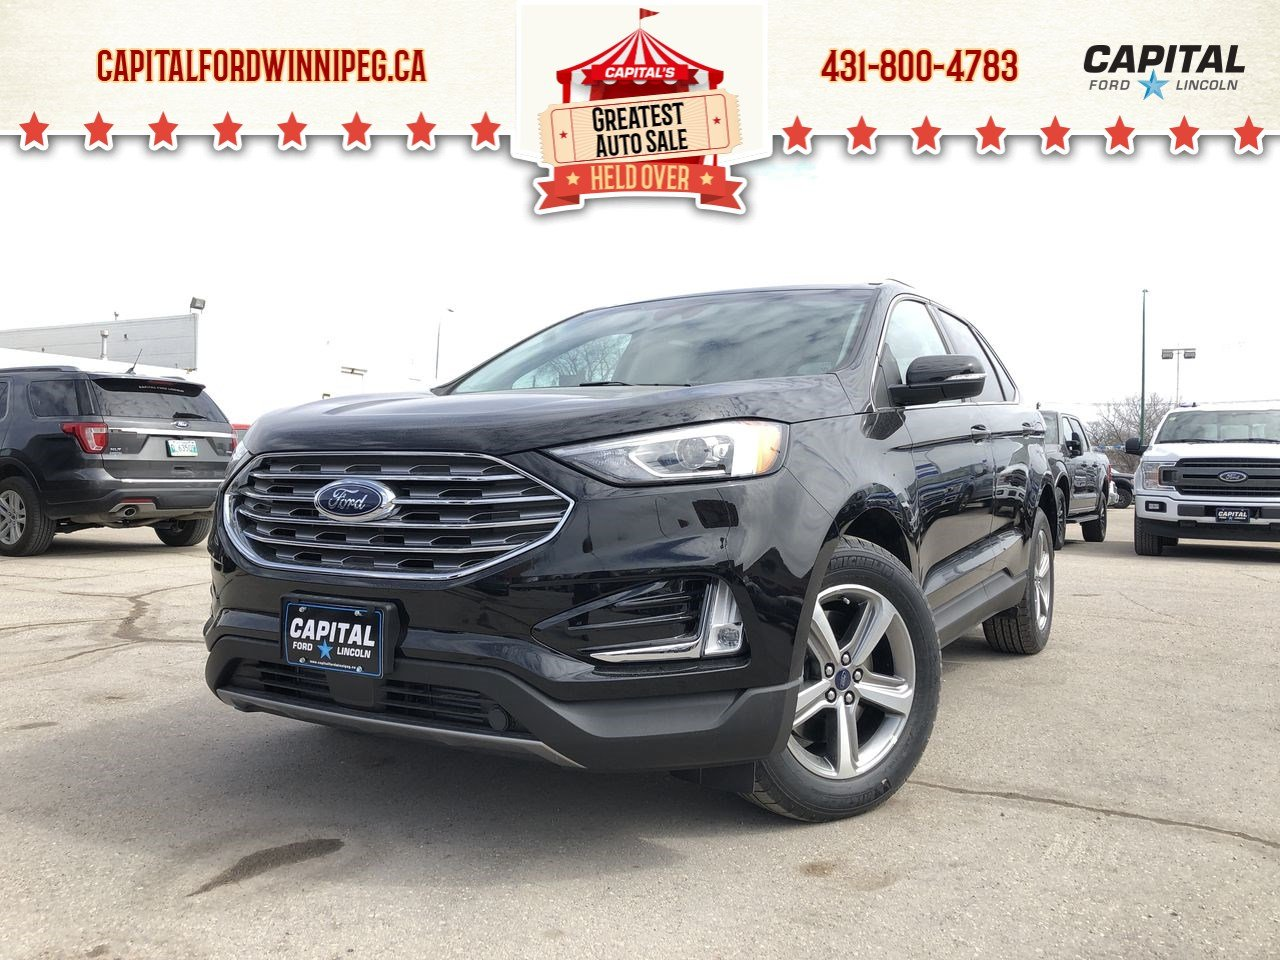 New 2019 Ford Edge SEL*AWD*Save $7 000!*Heated Seats*Bluetooth*Navigation*Wireless Charging